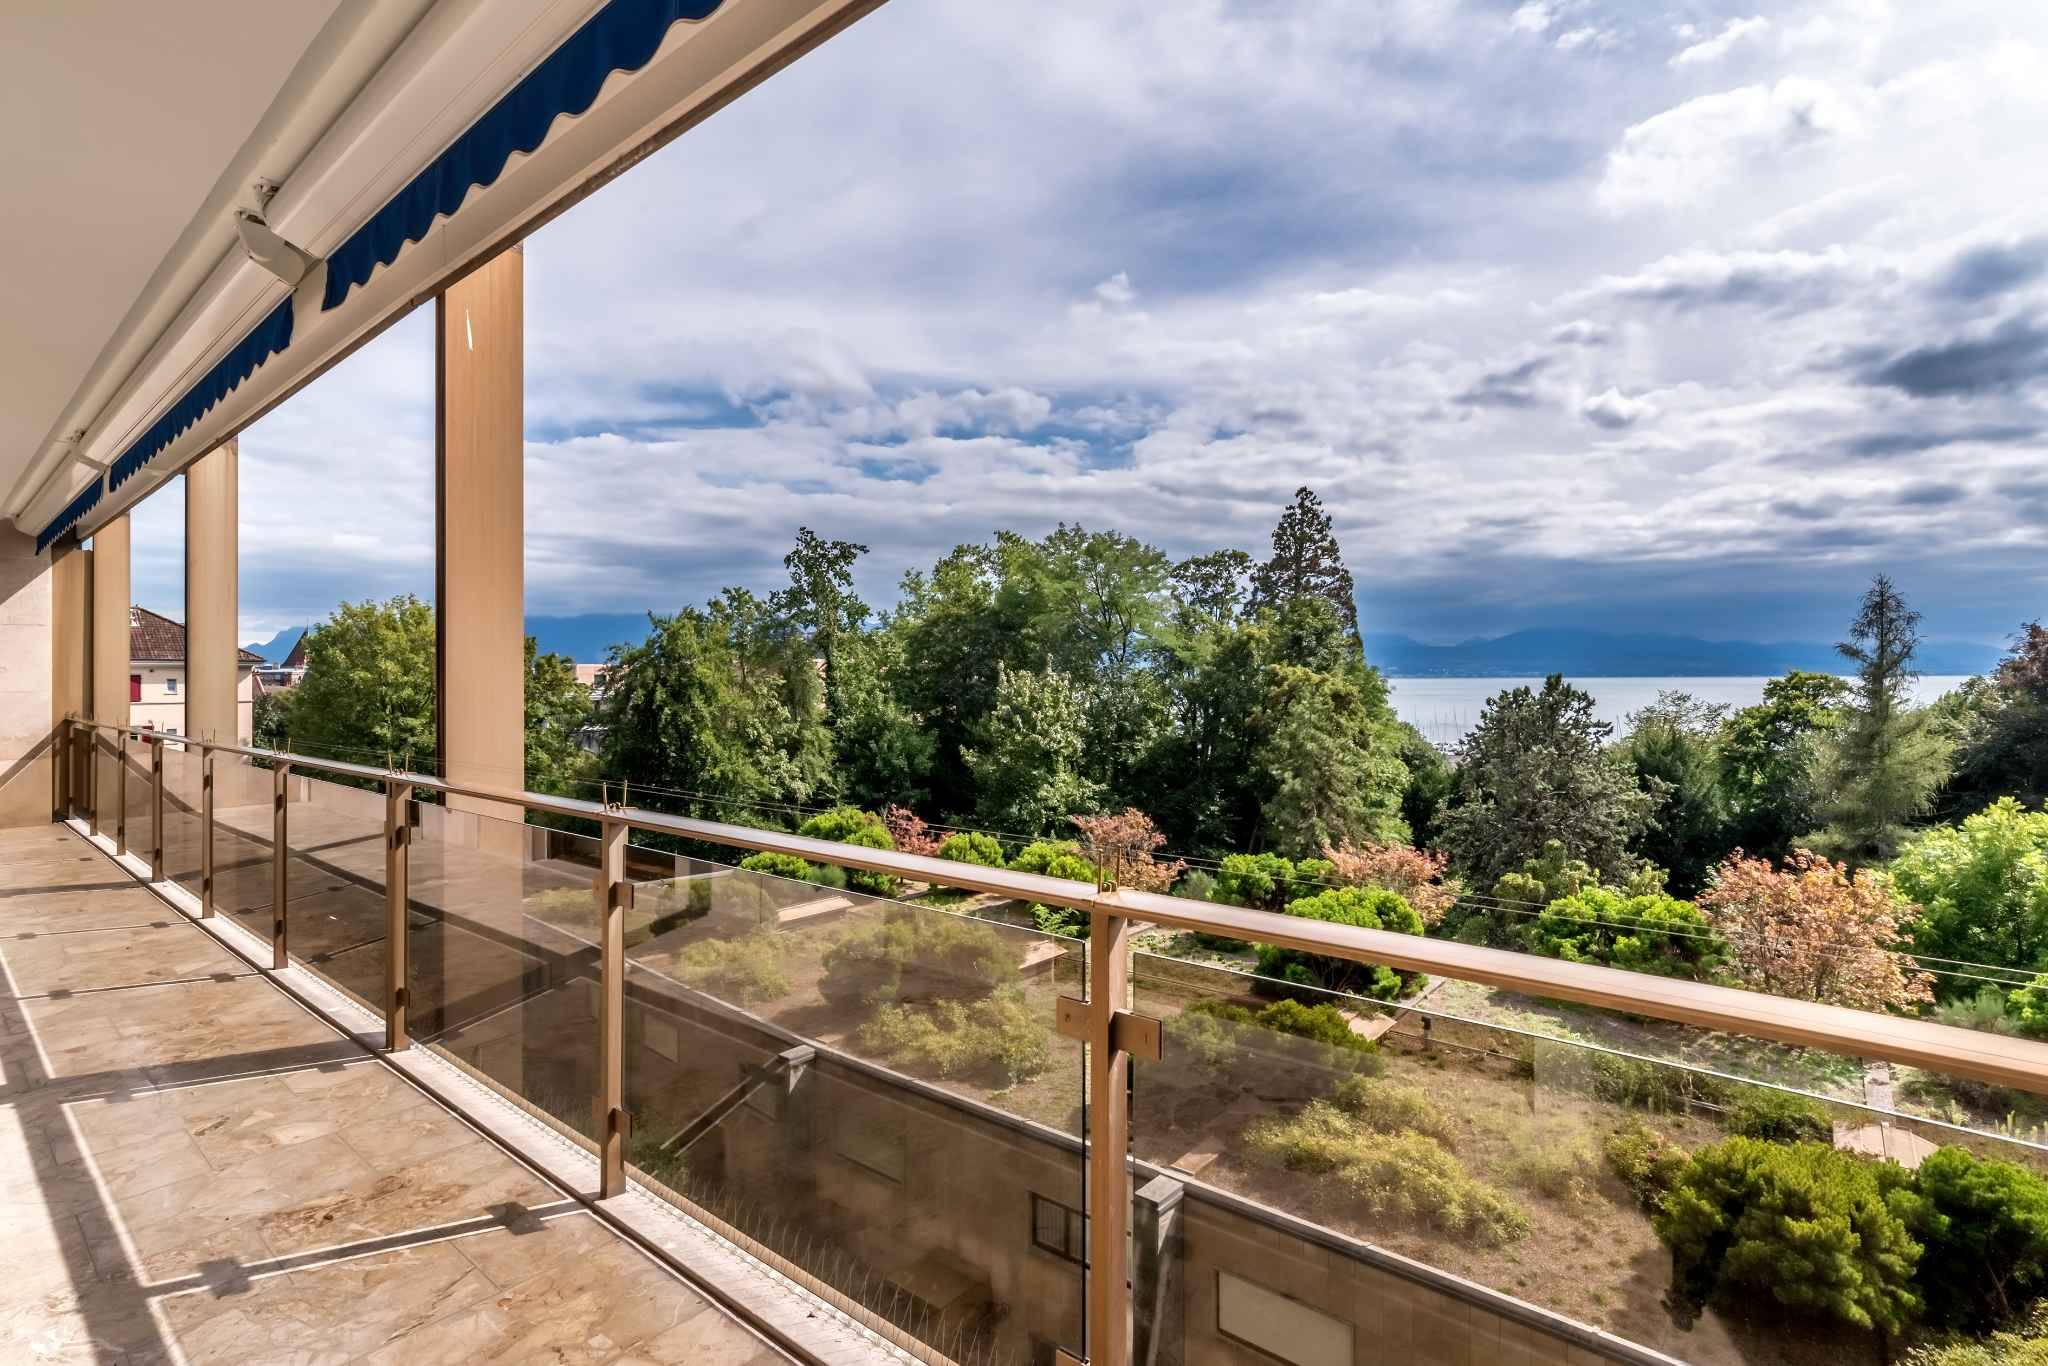 Lavish apartment with 156 sq. m. of living space and breathtaking view of the lake and the Alps